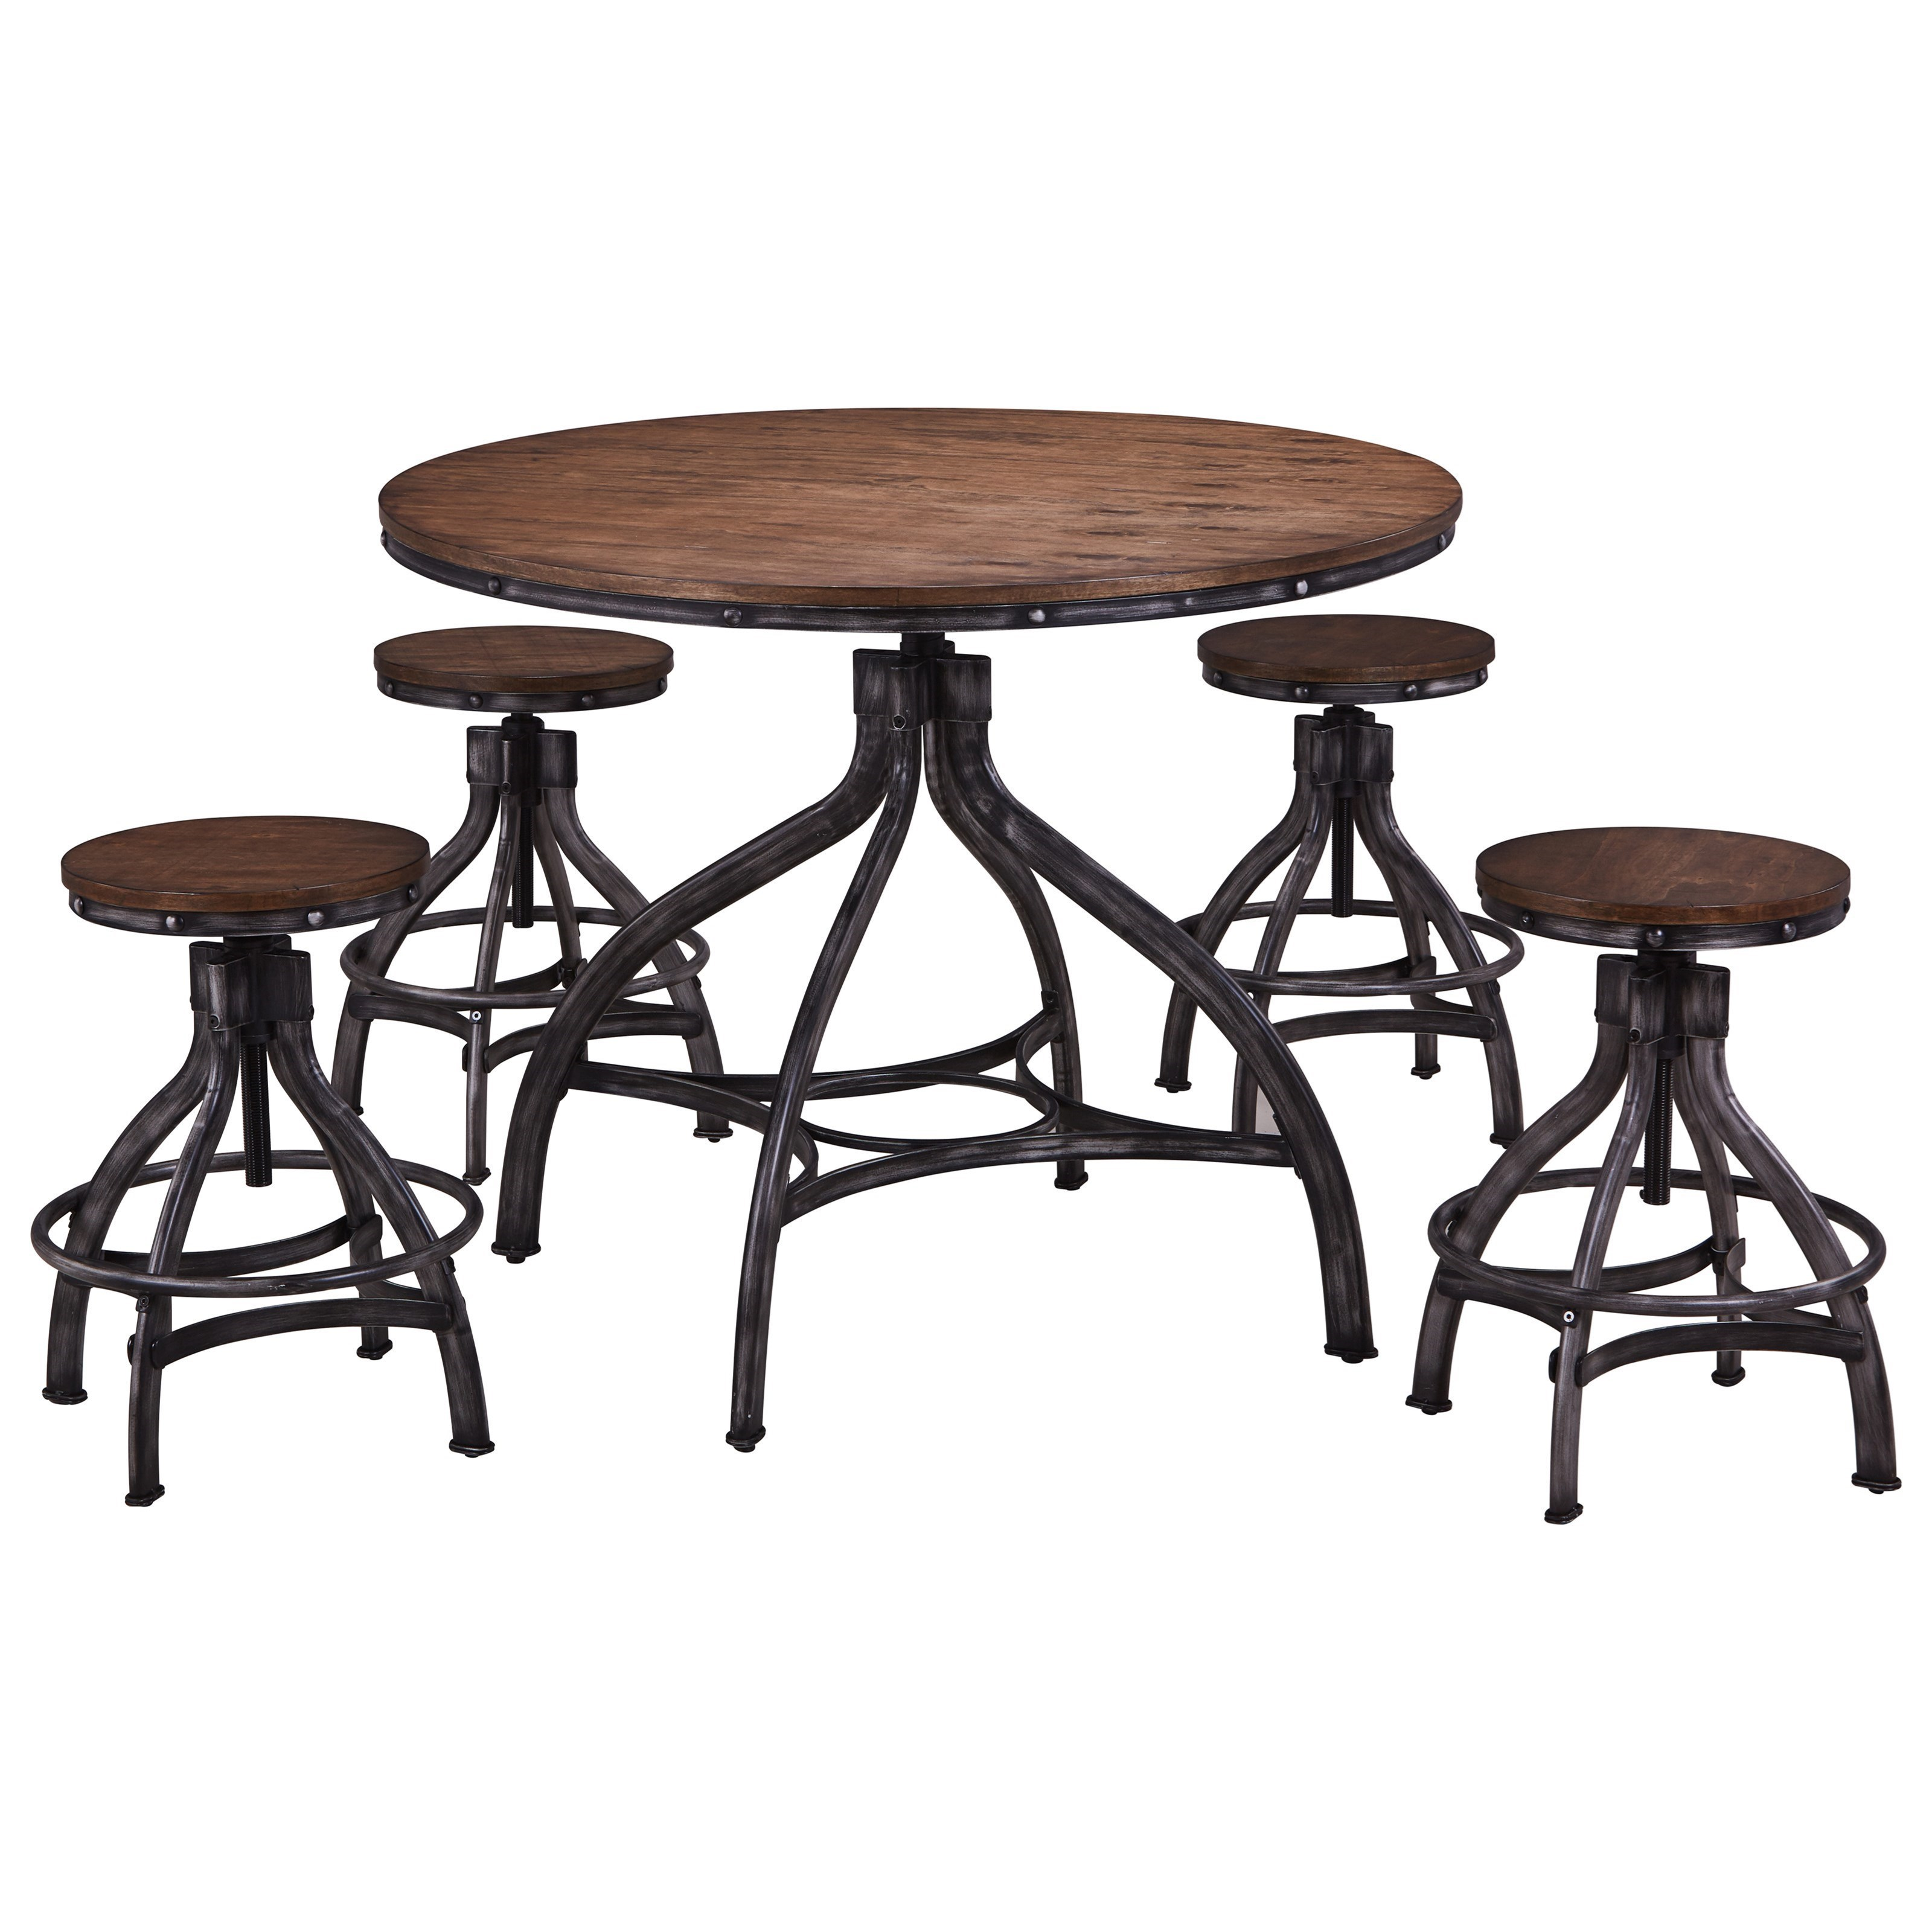 Contemporary industrial furniture Modern Simmons Chandler Contemporary Industrial Piece Round Table And Stool Set Furniture Options Simmons Chandler Contemporary Industrial Piece Round Table And